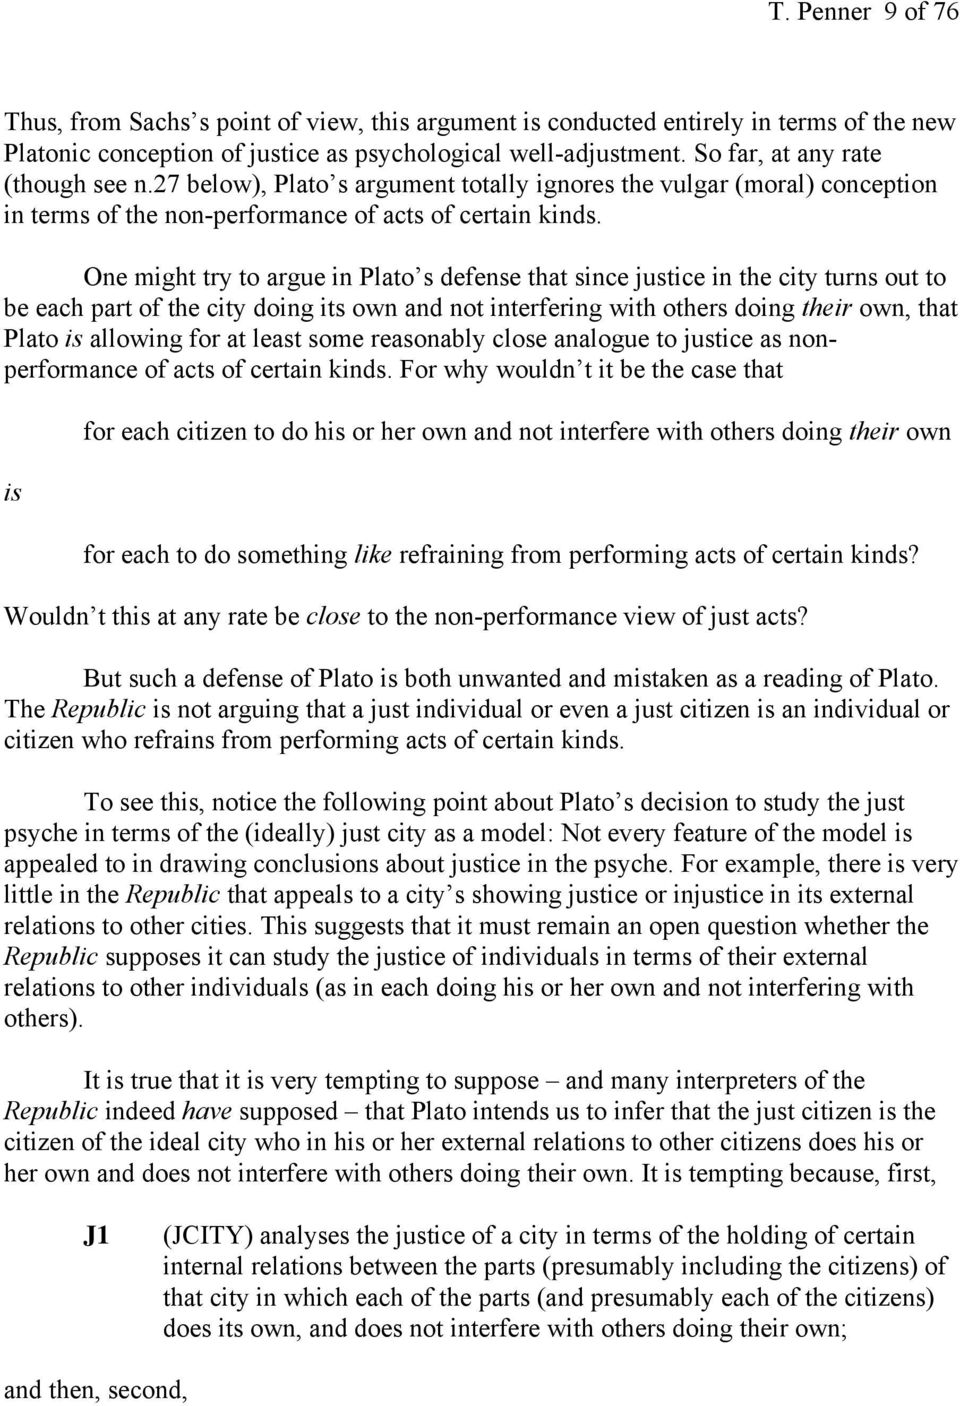 One might try to argue in Plato s defense that since justice in the city turns out to be each part of the city doing its own and not interfering with others doing their own, that Plato is allowing